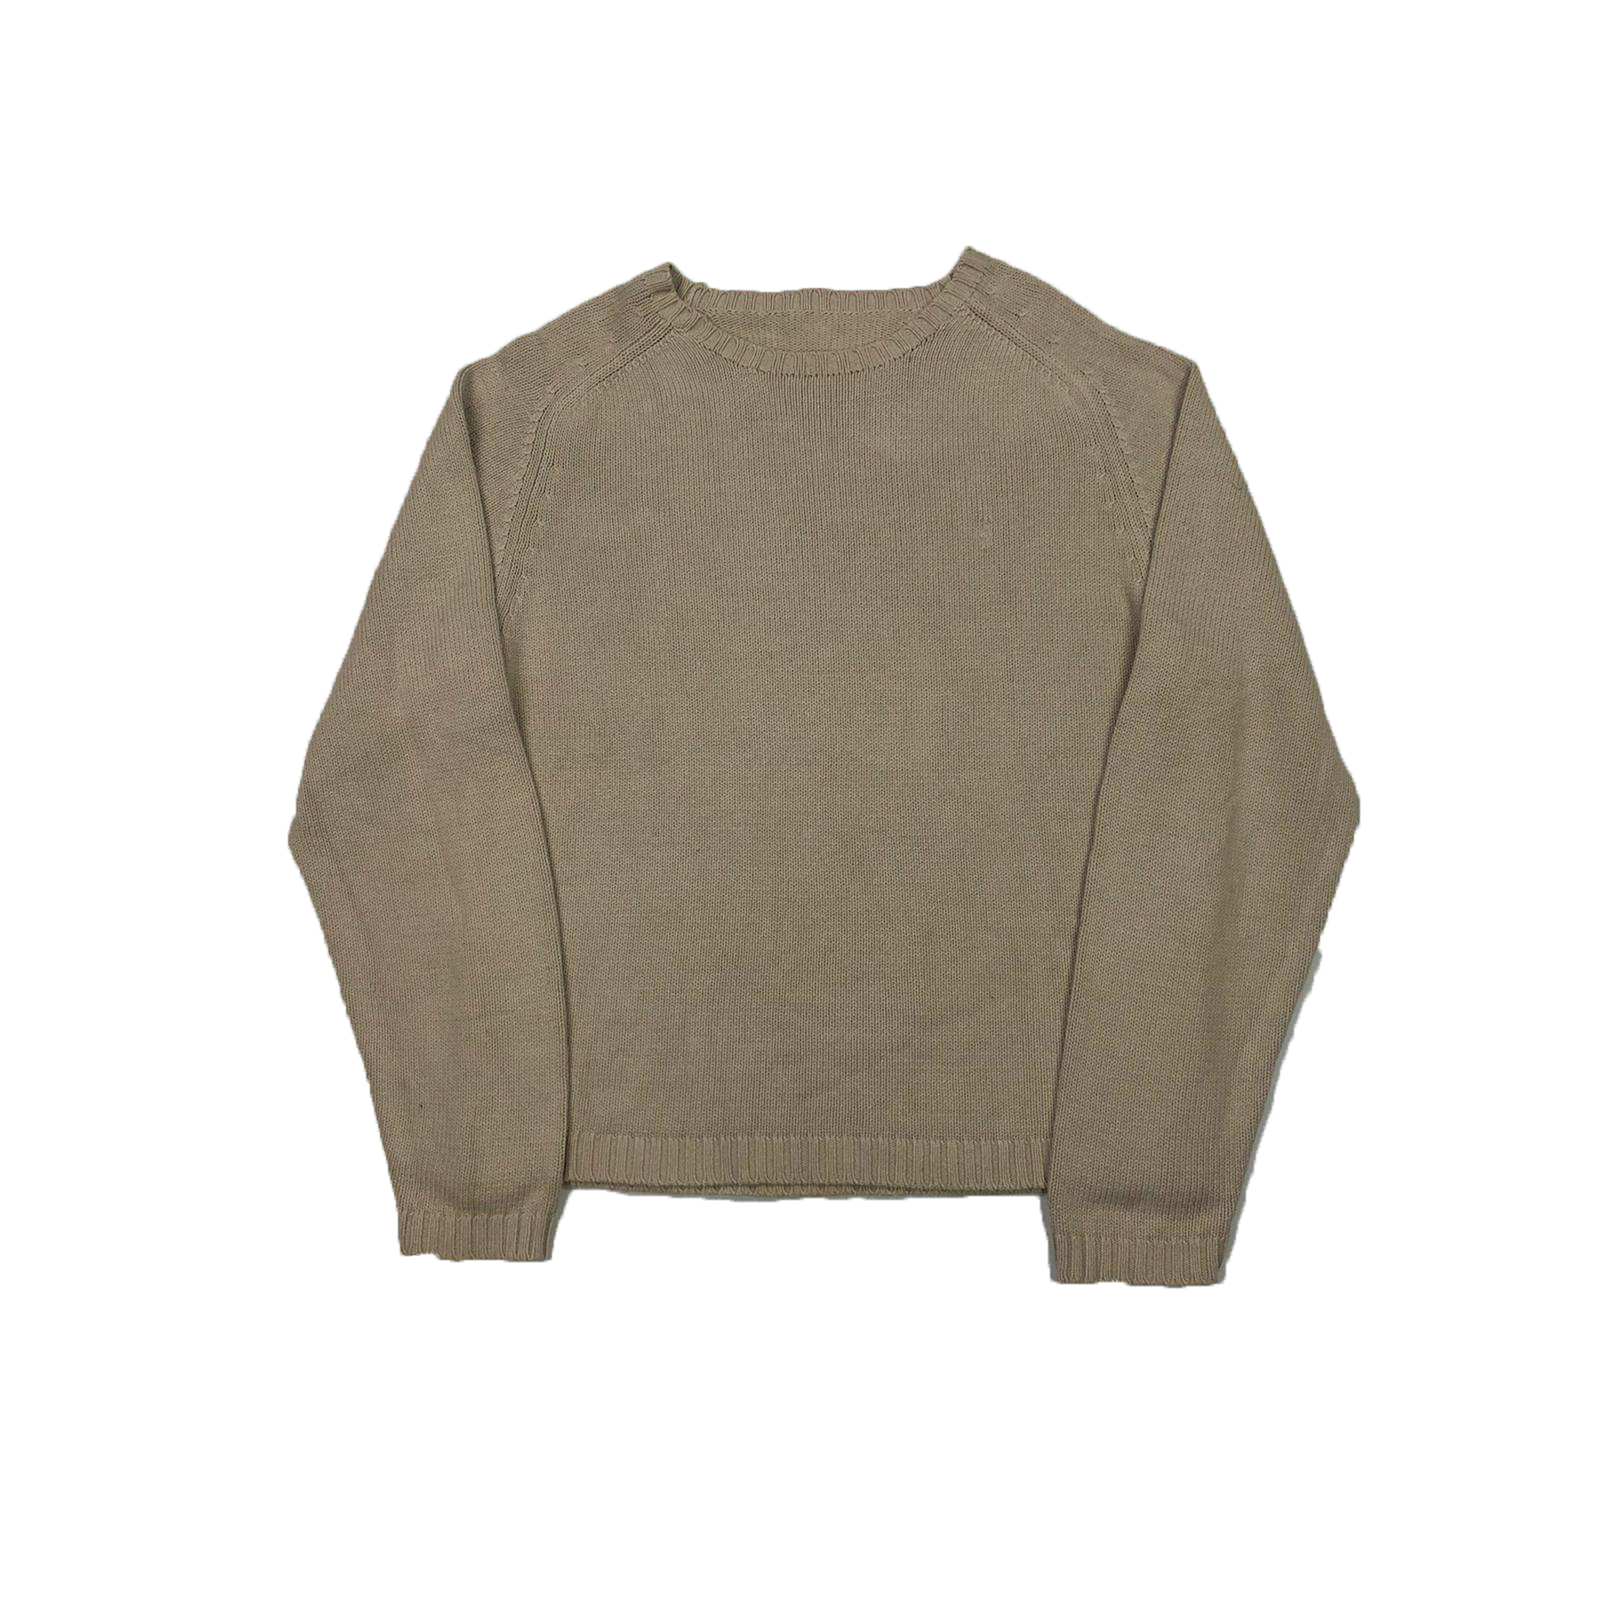 YSL knit sweatshirt